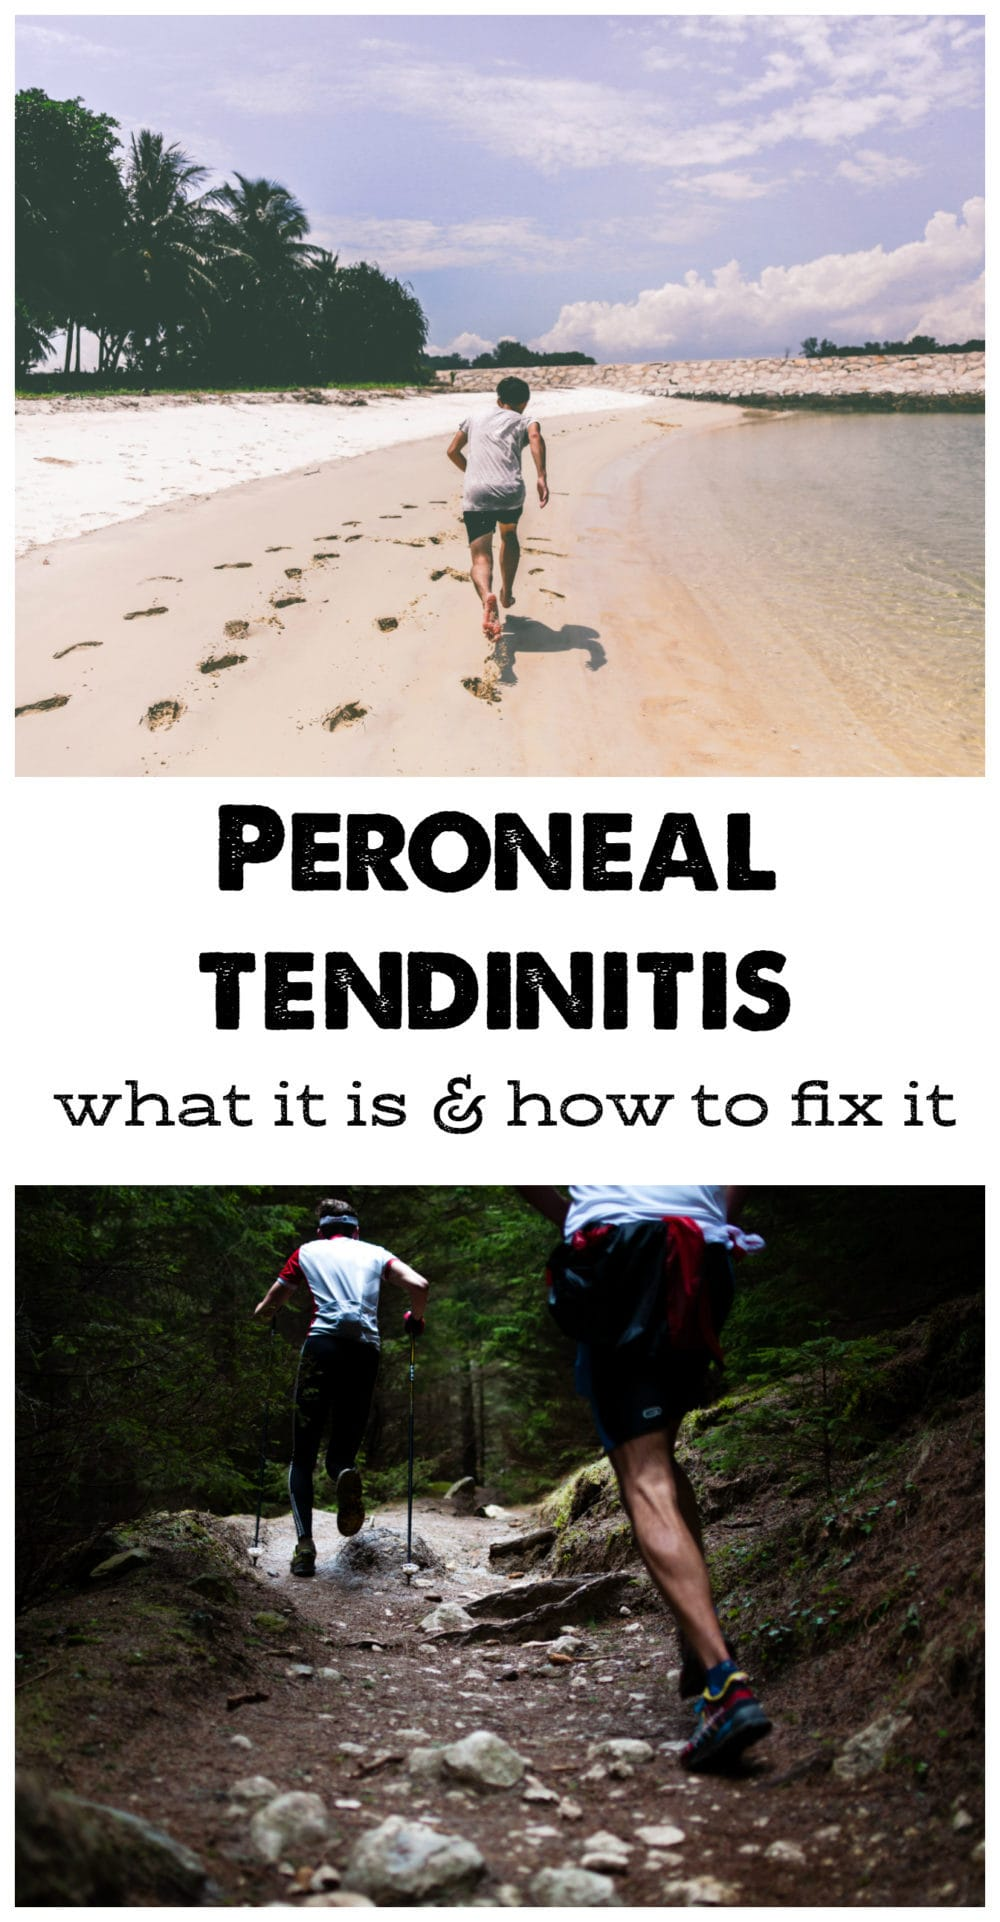 When your body goes 'ouch': peroneal tendinitis - @thefitcookie #health #fitness #fitfluential